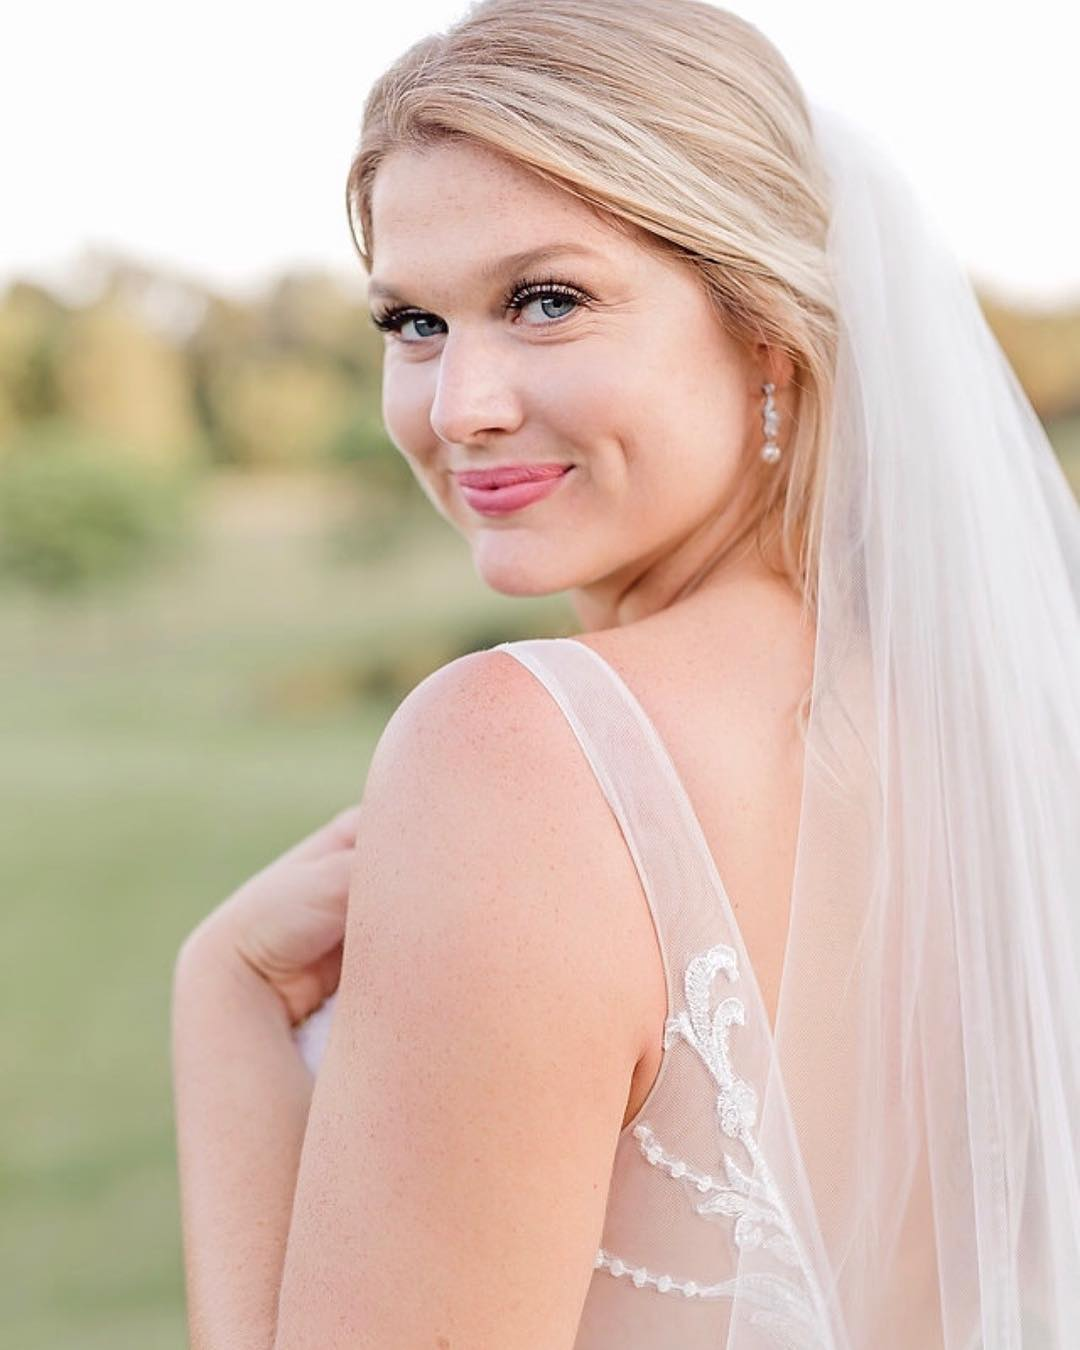 A bride looks over her shoulder at the camera, makeup done by artist Melina Tobin